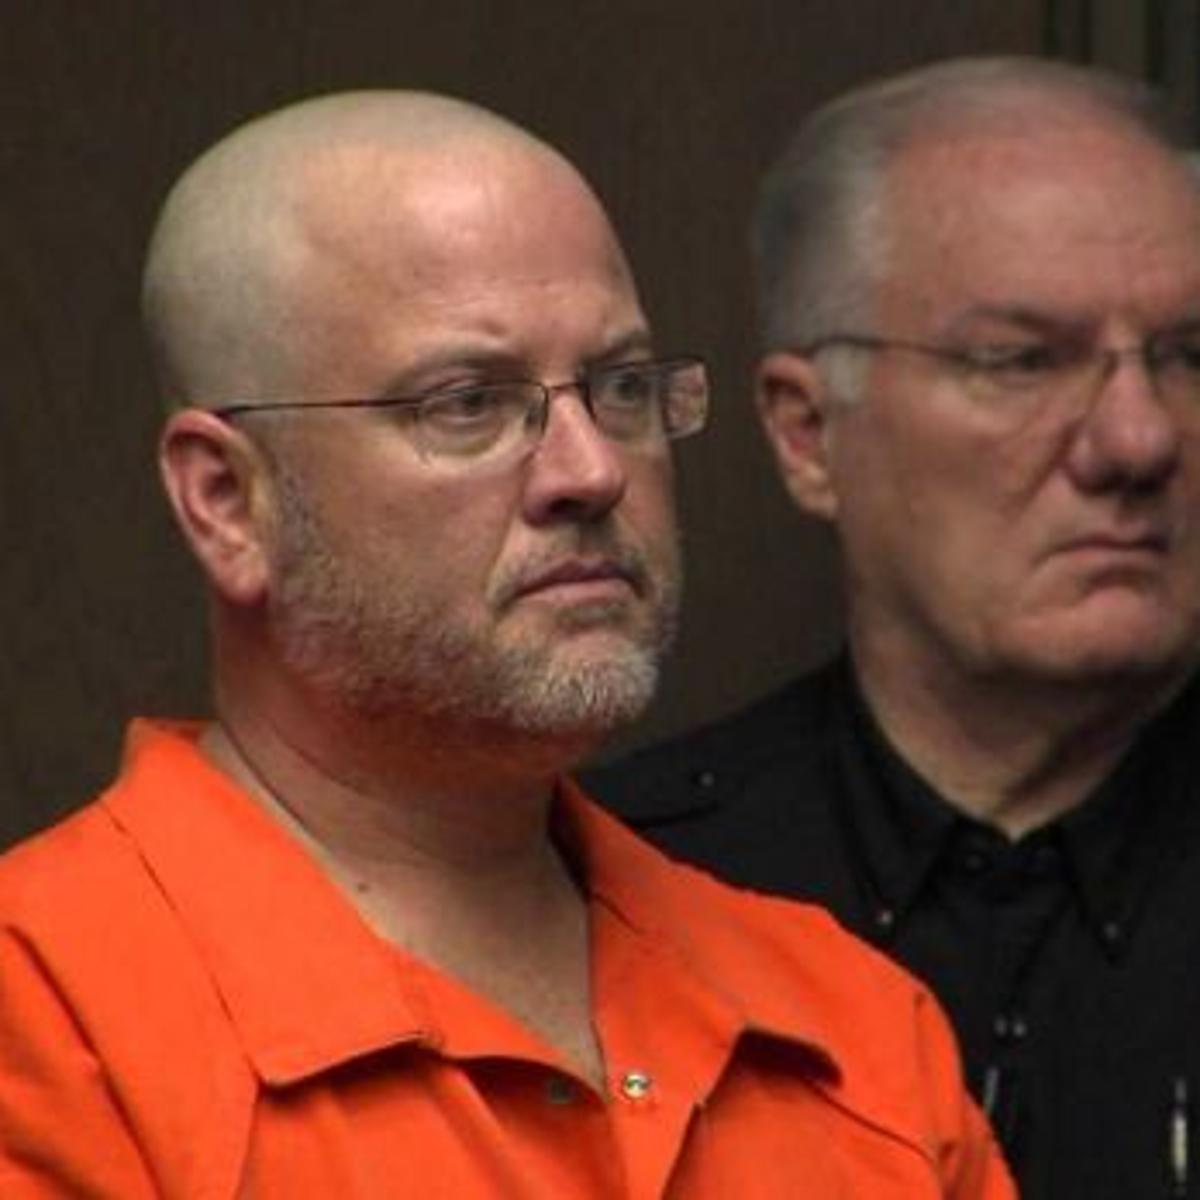 Hearing for Steven Tisdale on embezzlement charges postponed